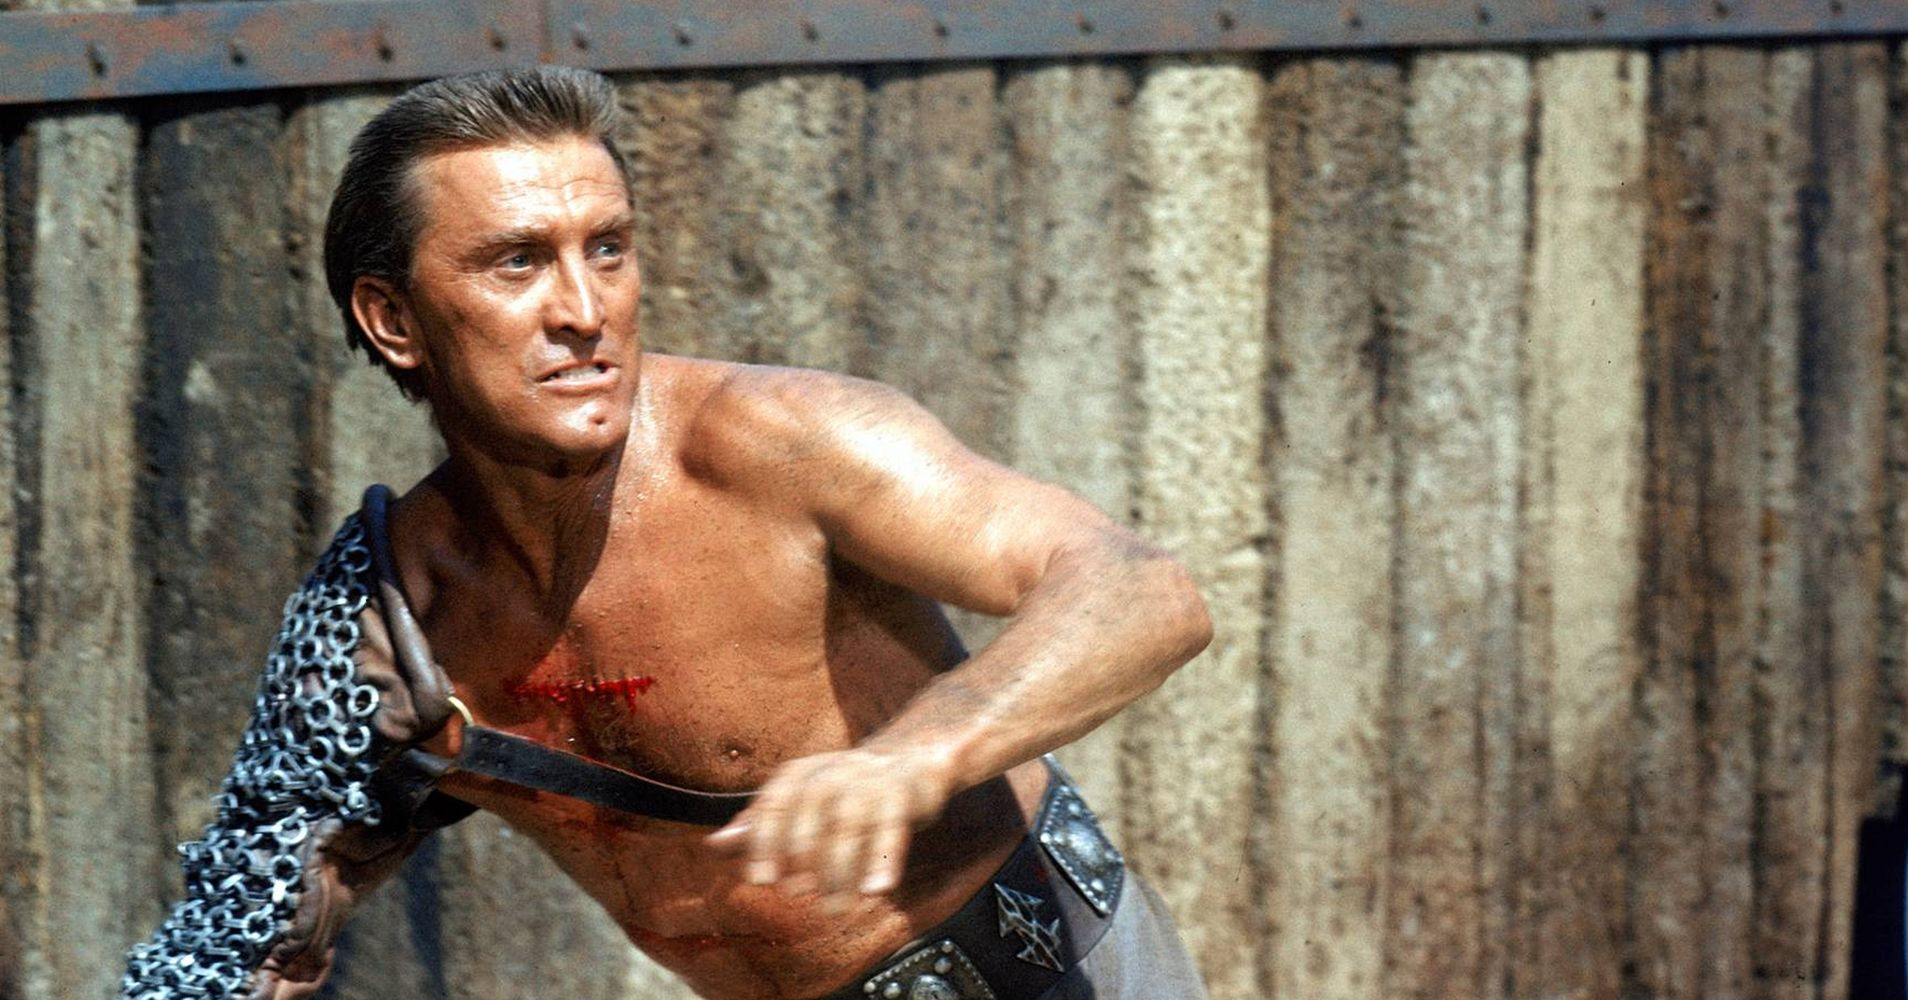 Laurence olivier spartacus quotes - Laurence Olivier Spartacus Quotes 46